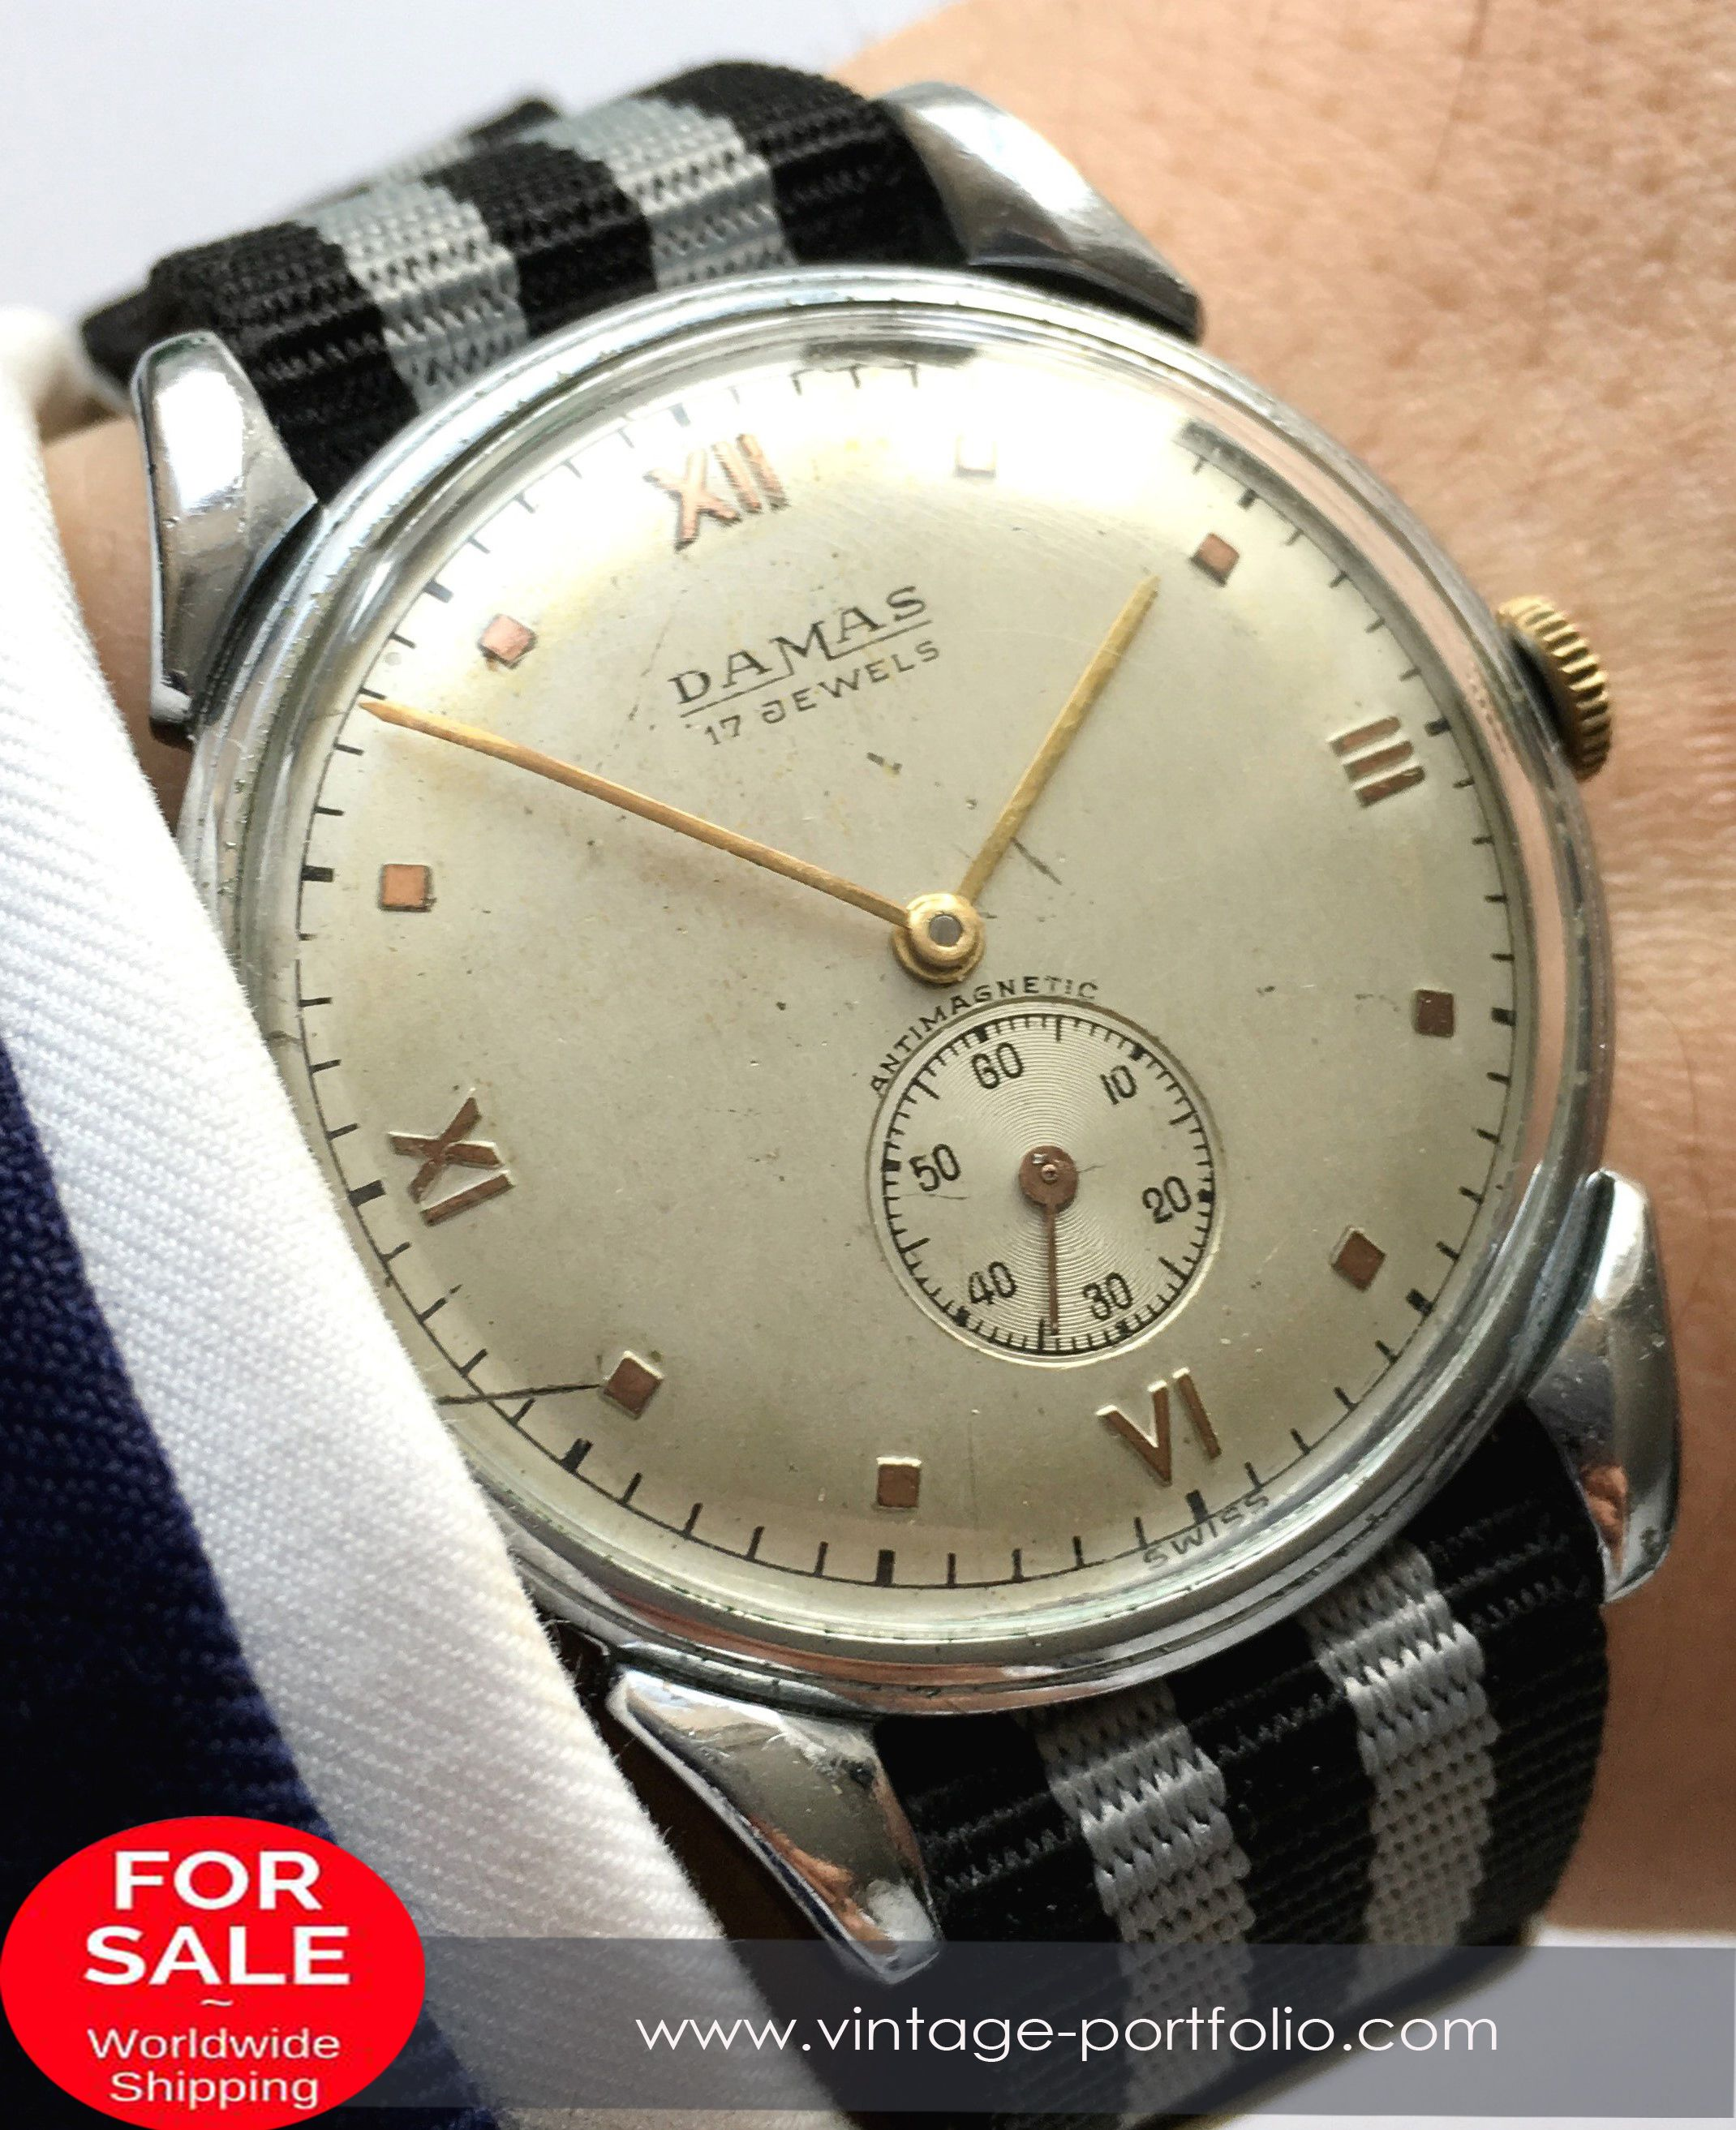 heuer carrera vintage automatic pin gentlemanstyle watches businessattire style luxury chronograph